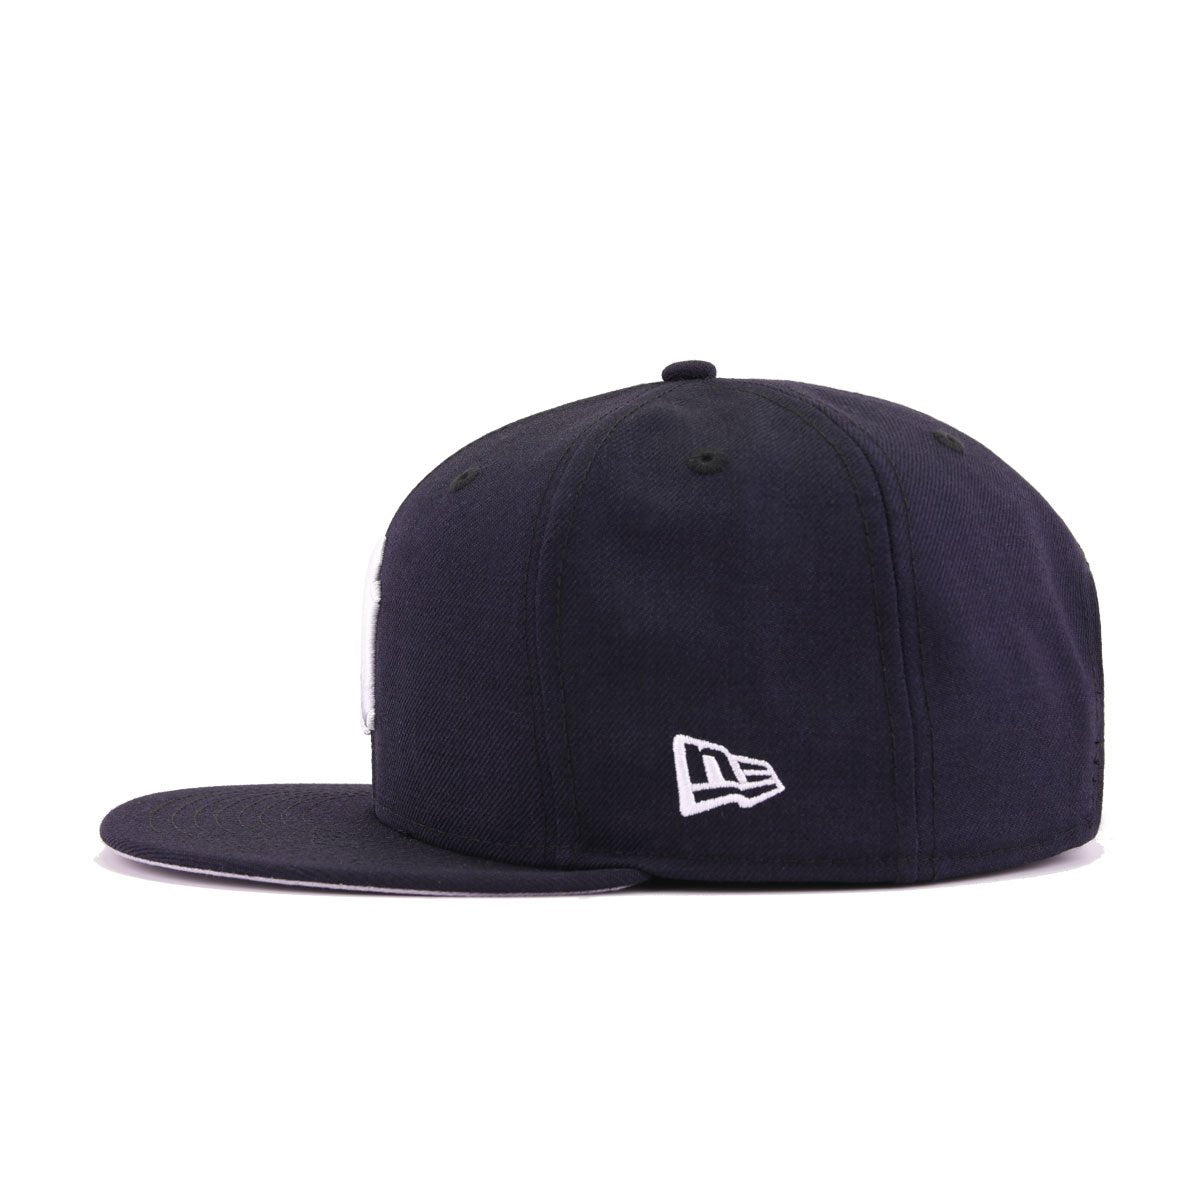 New York Yankees Navy 27 Championships New Era 9Fifty Snapback